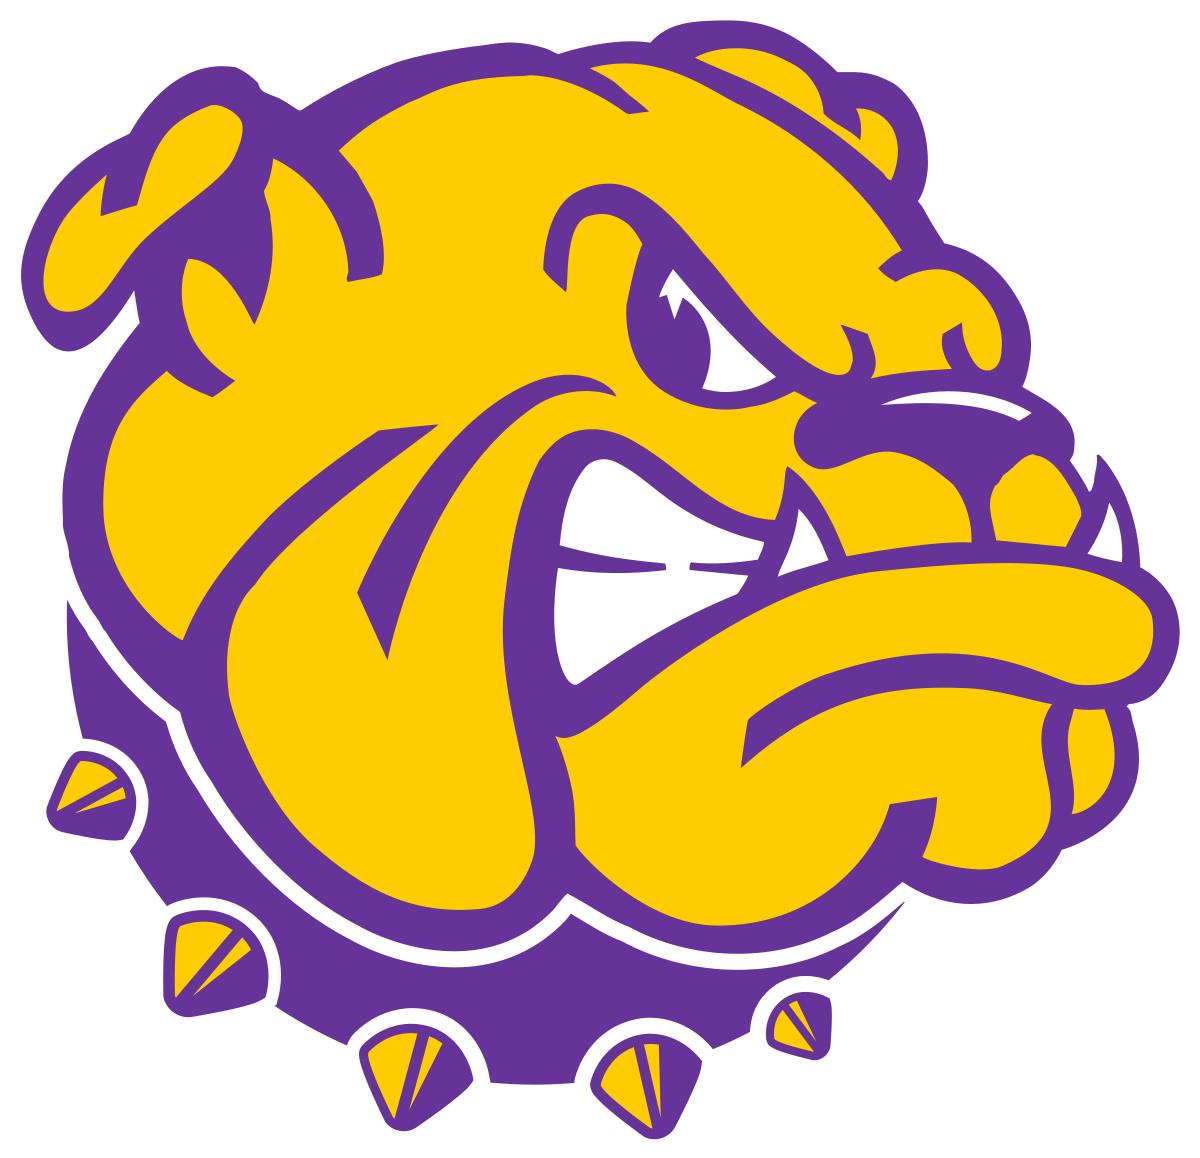 Twin valley football clipart graphic free download Western Illinois Leathernecks - Wikipedia graphic free download